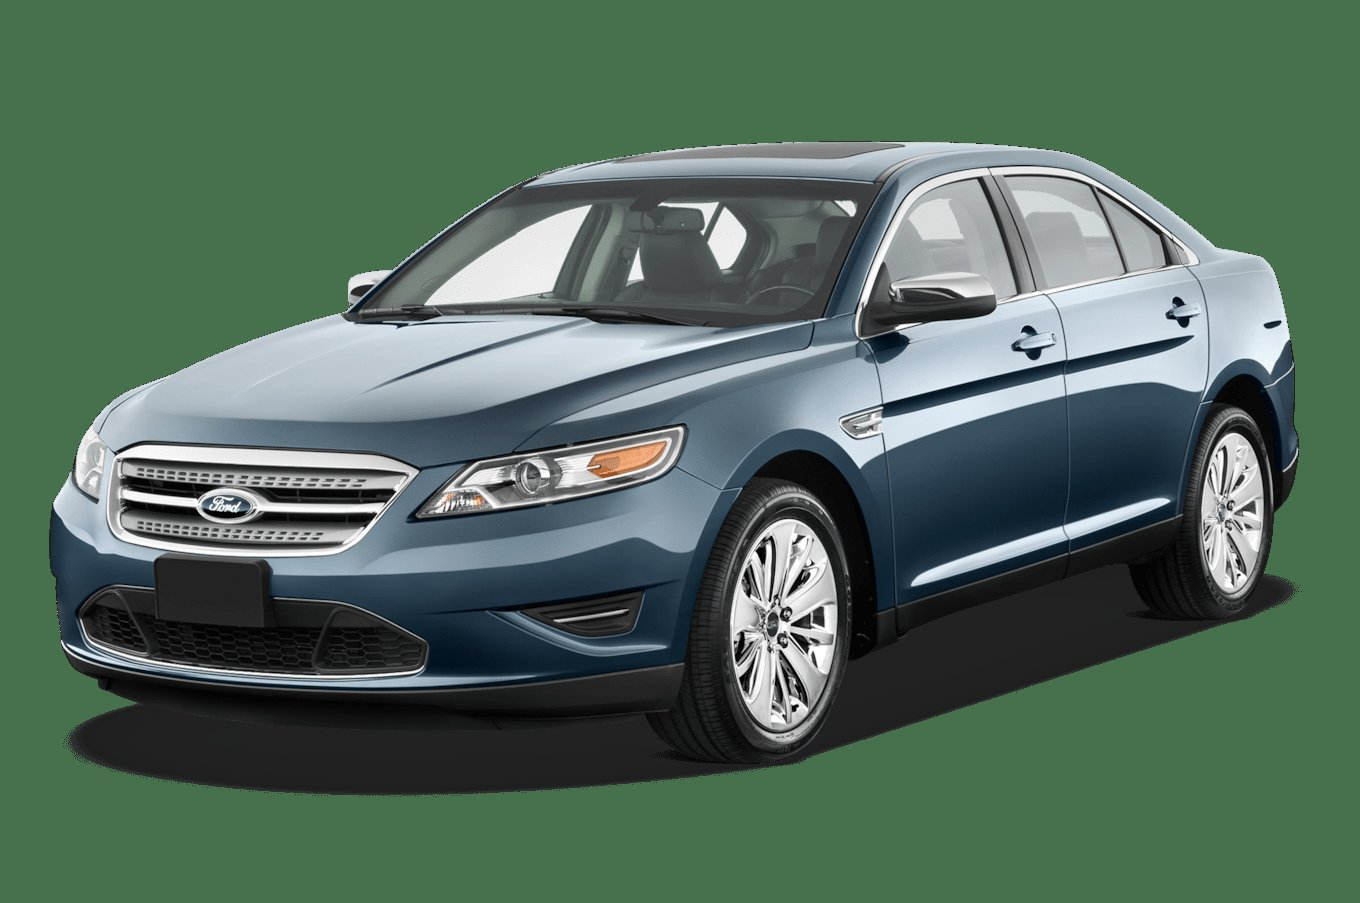 Latest 2010 Ford Taurus Reviews Research Taurus Prices Specs Free Download